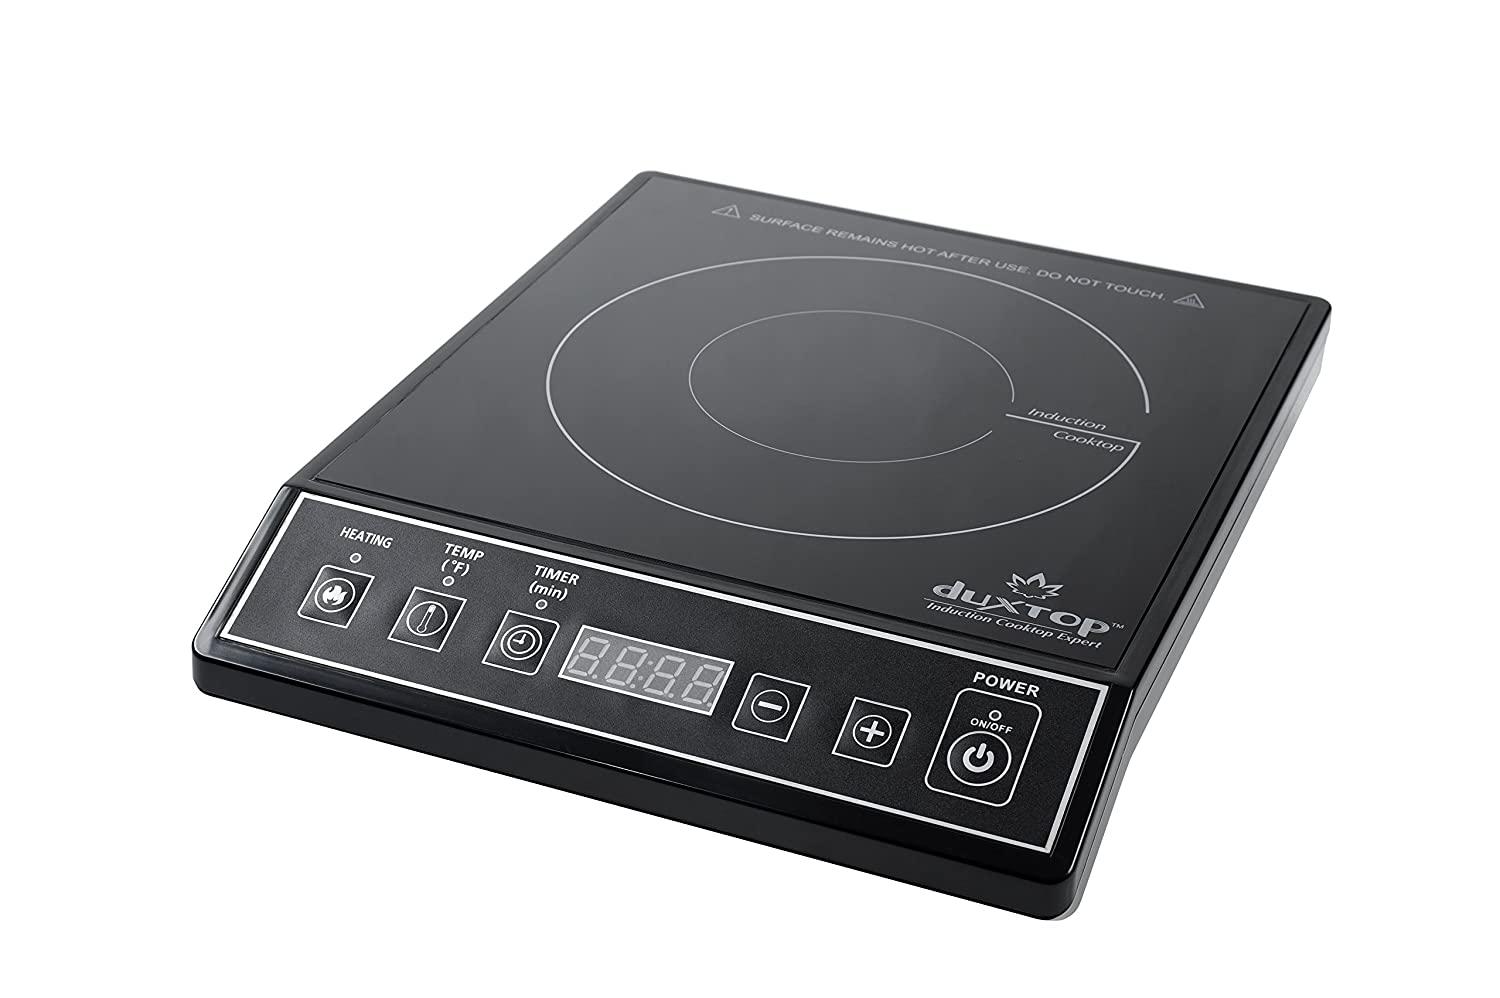 Secura MC9100 induction cooktop